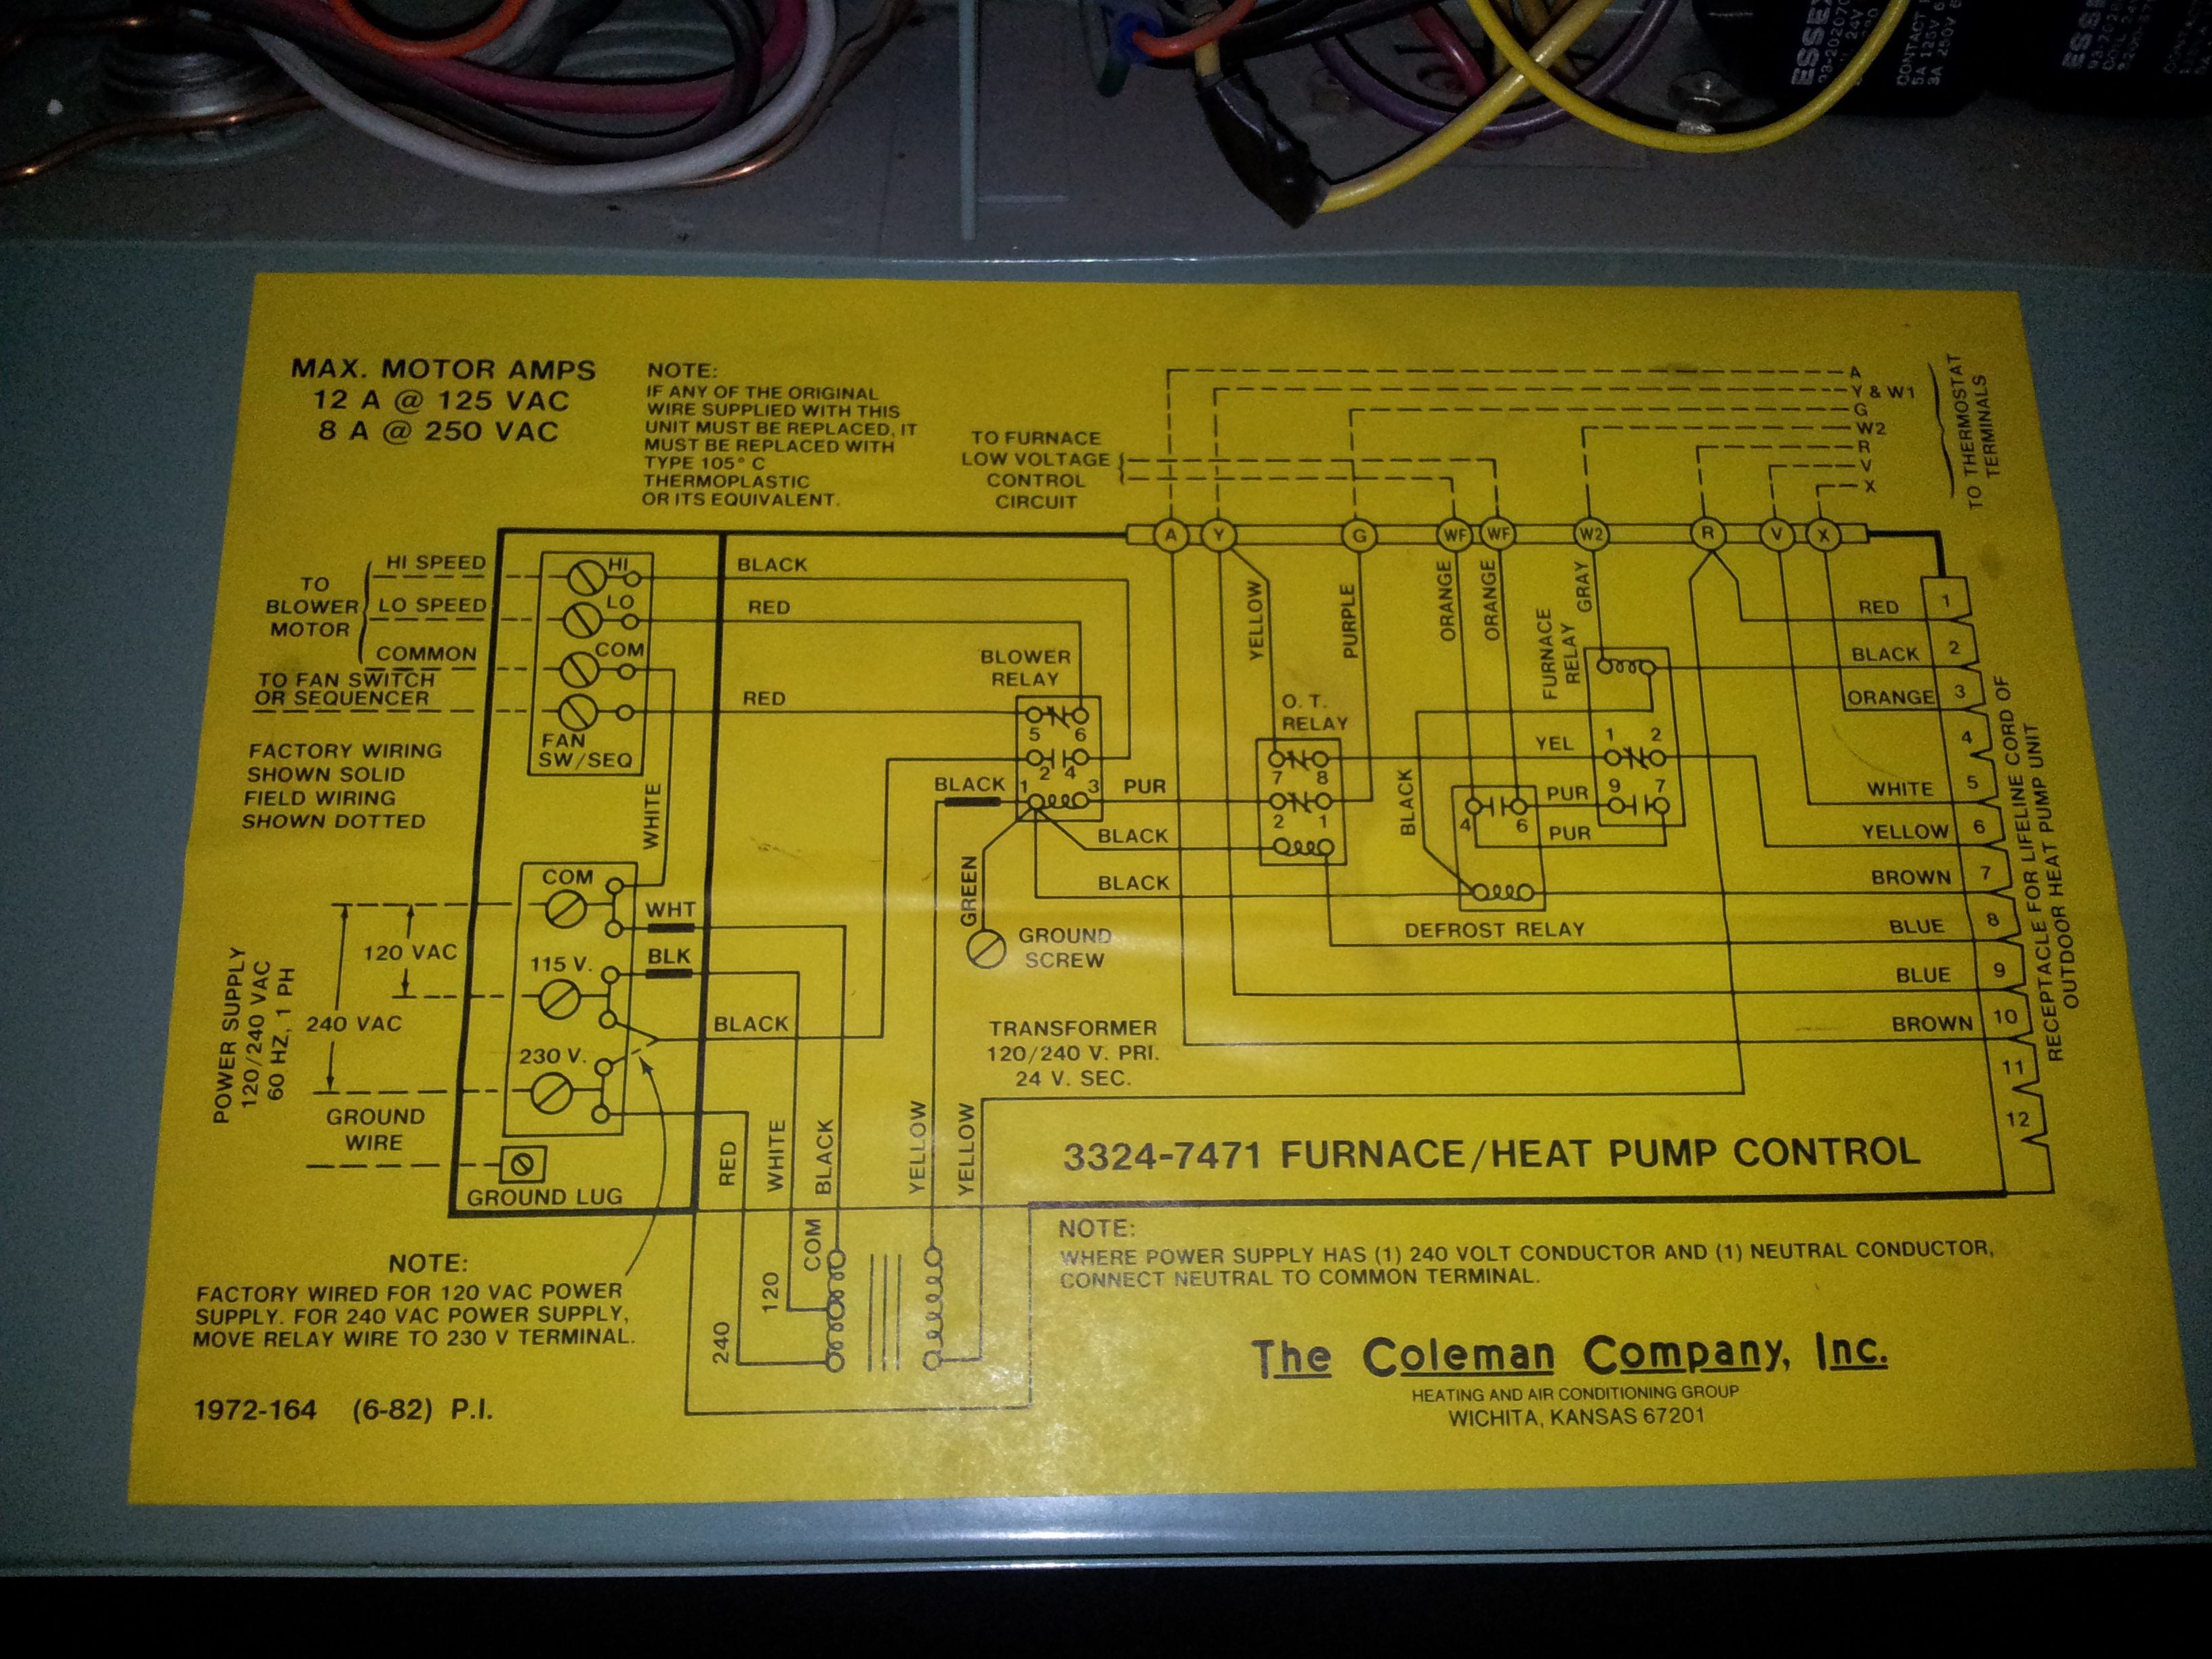 2012 08 07_020543_20120806_170817 coleman evcon wiring diagram coleman evcon wiring diagram 6bdc coleman thermostat wiring diagram at gsmportal.co